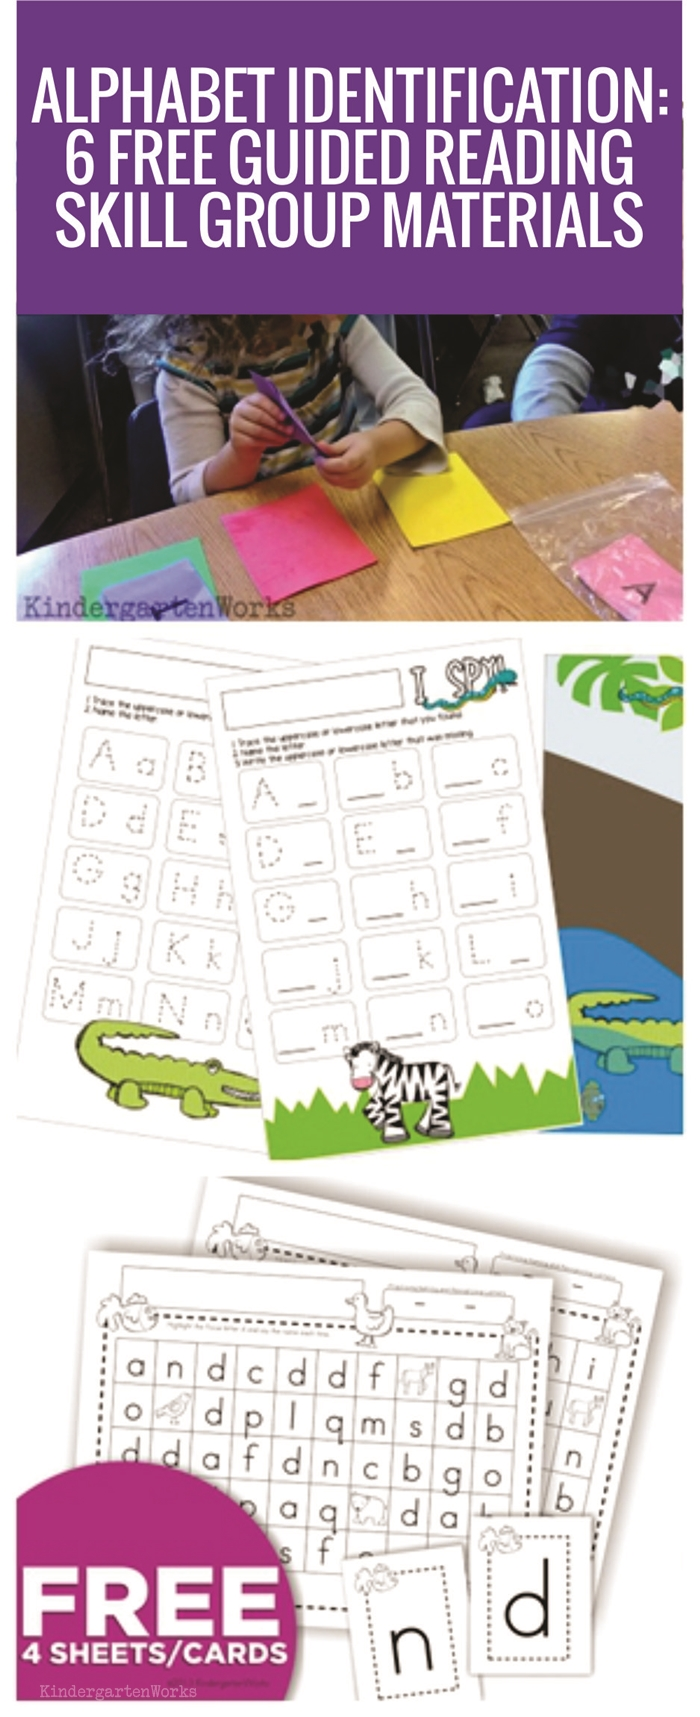 Alphabet Identification - 6 Free Guided Reading Skill Group Materials